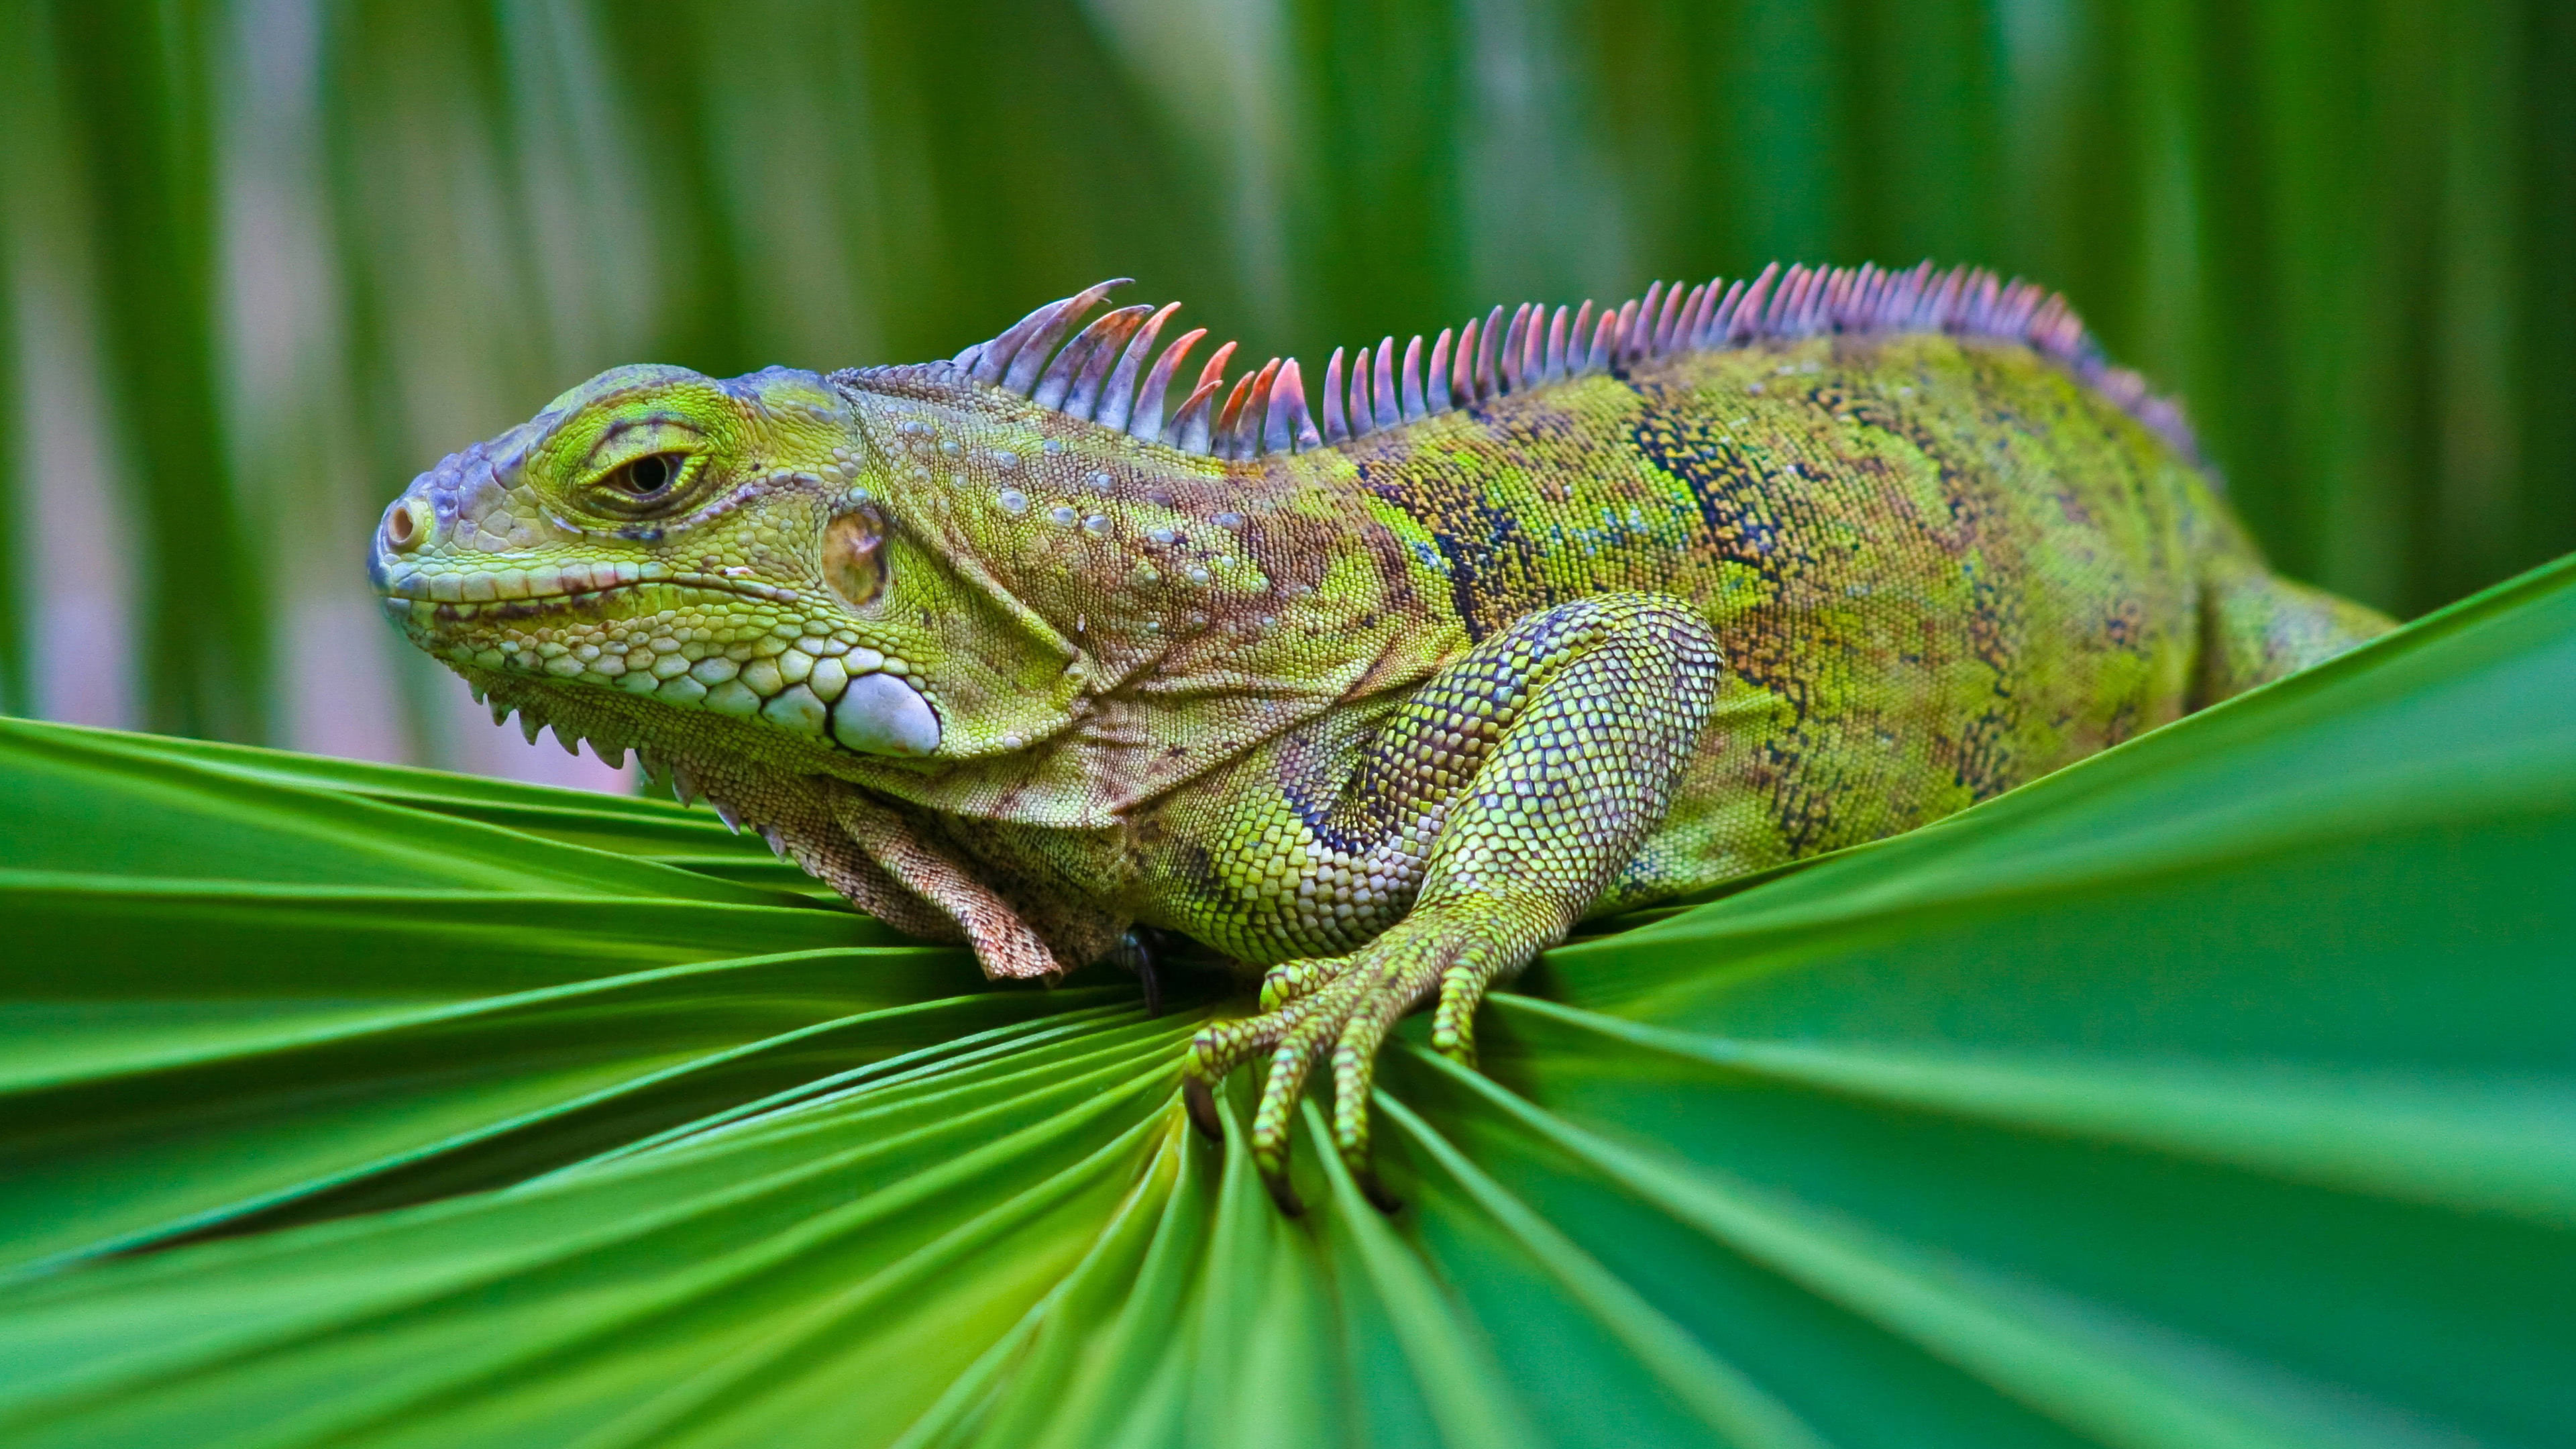 iguana green on leaf uhd 4k wallpaper